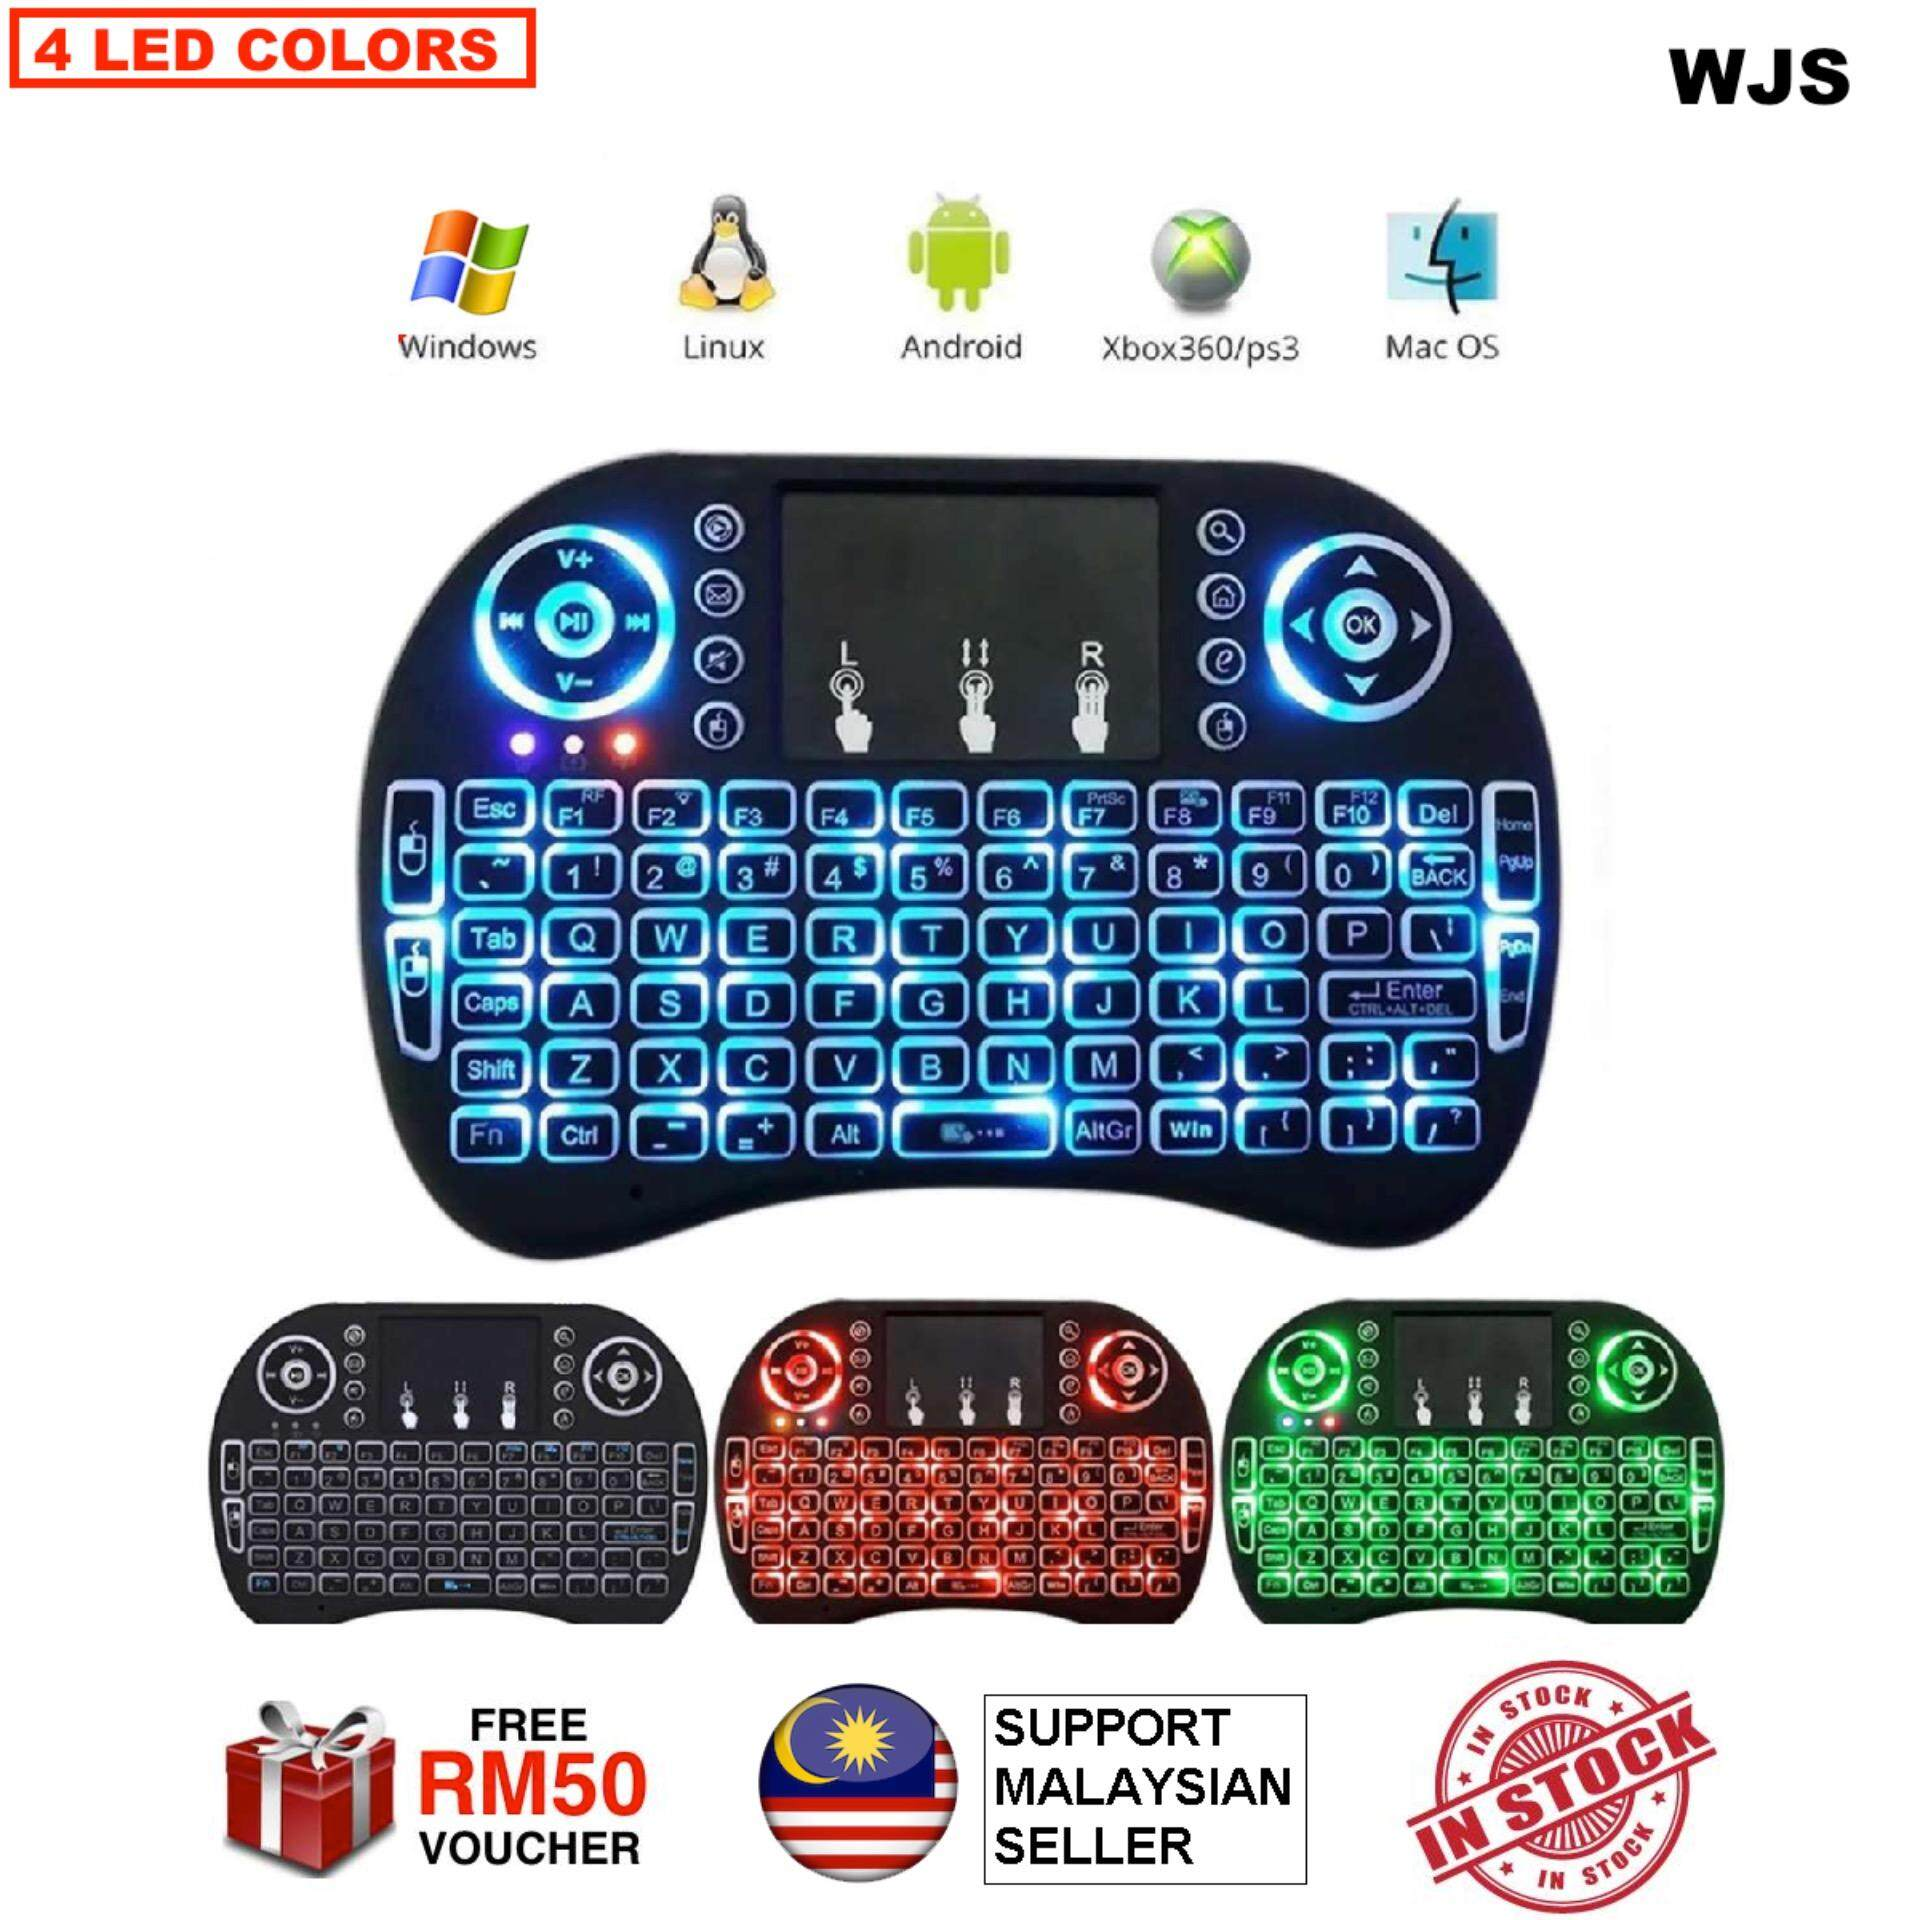 Keyboards - Gaming - Buy Keyboards - Gaming at Best Price in ...